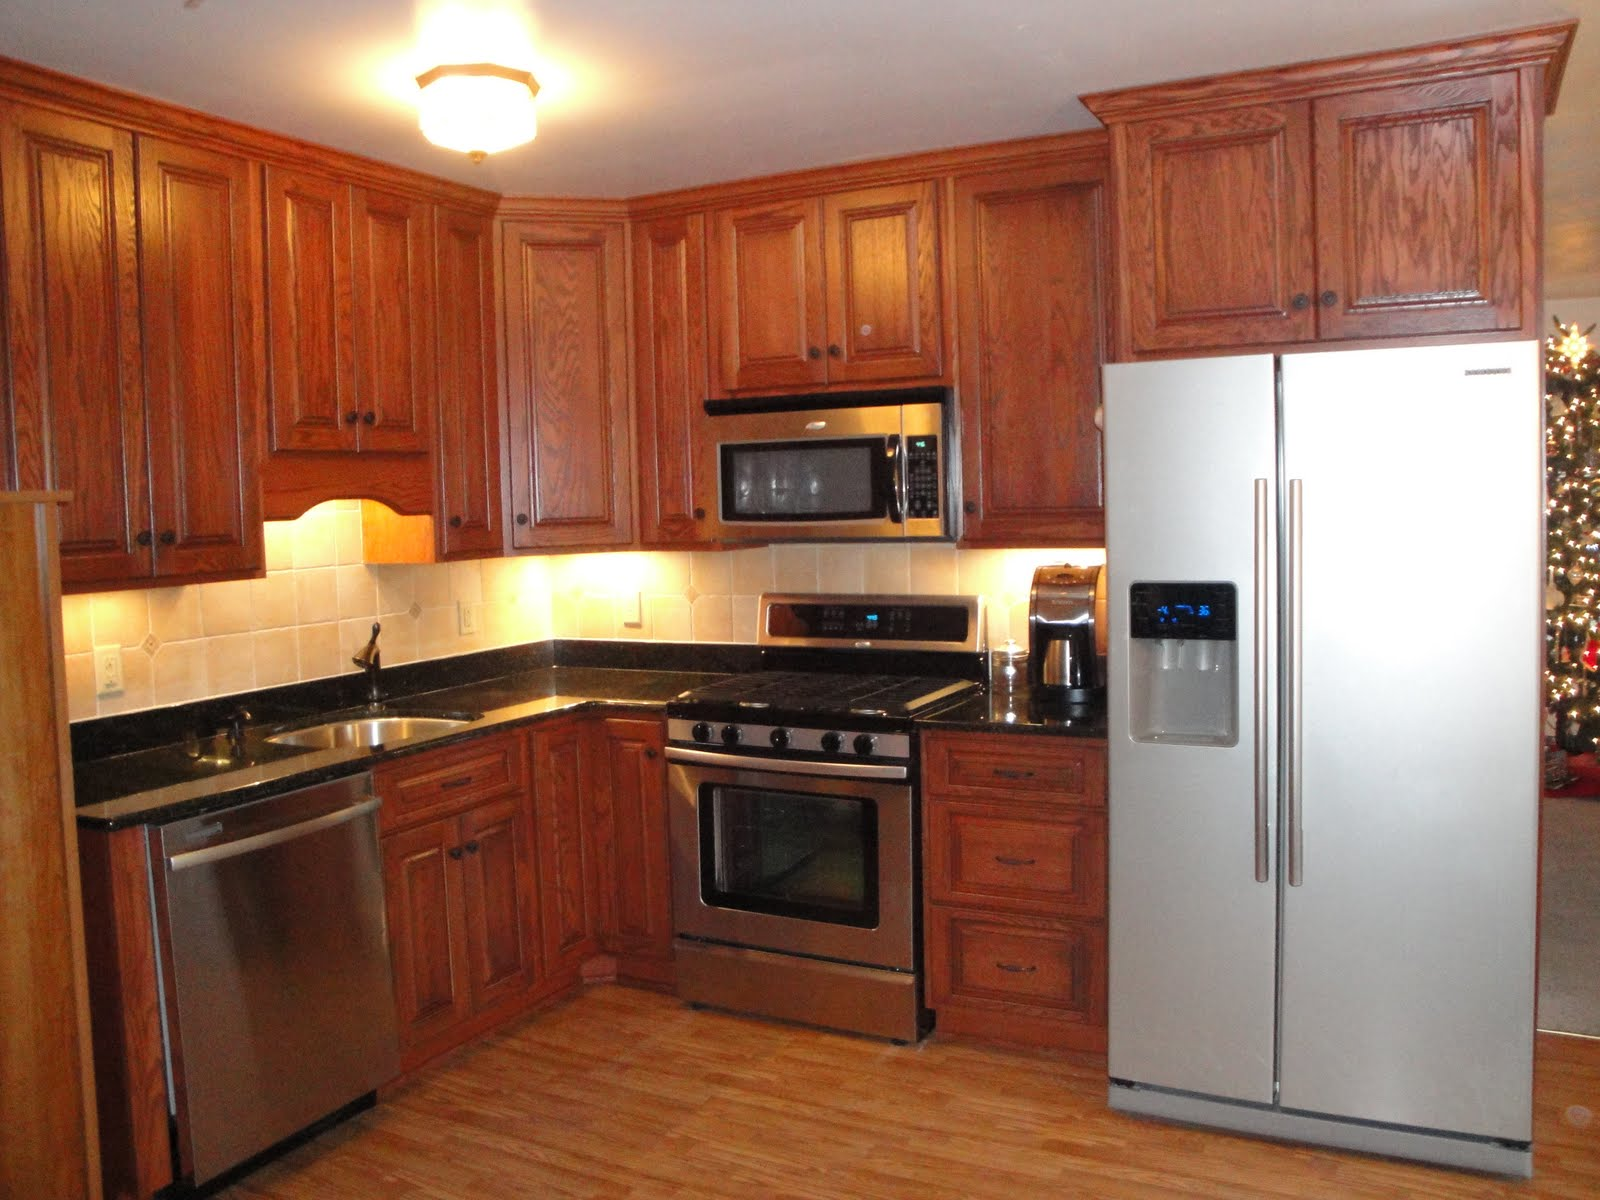 Used Oak Kitchen Cabinets Kitchen Emporium Red Oak Kitchen Remodel